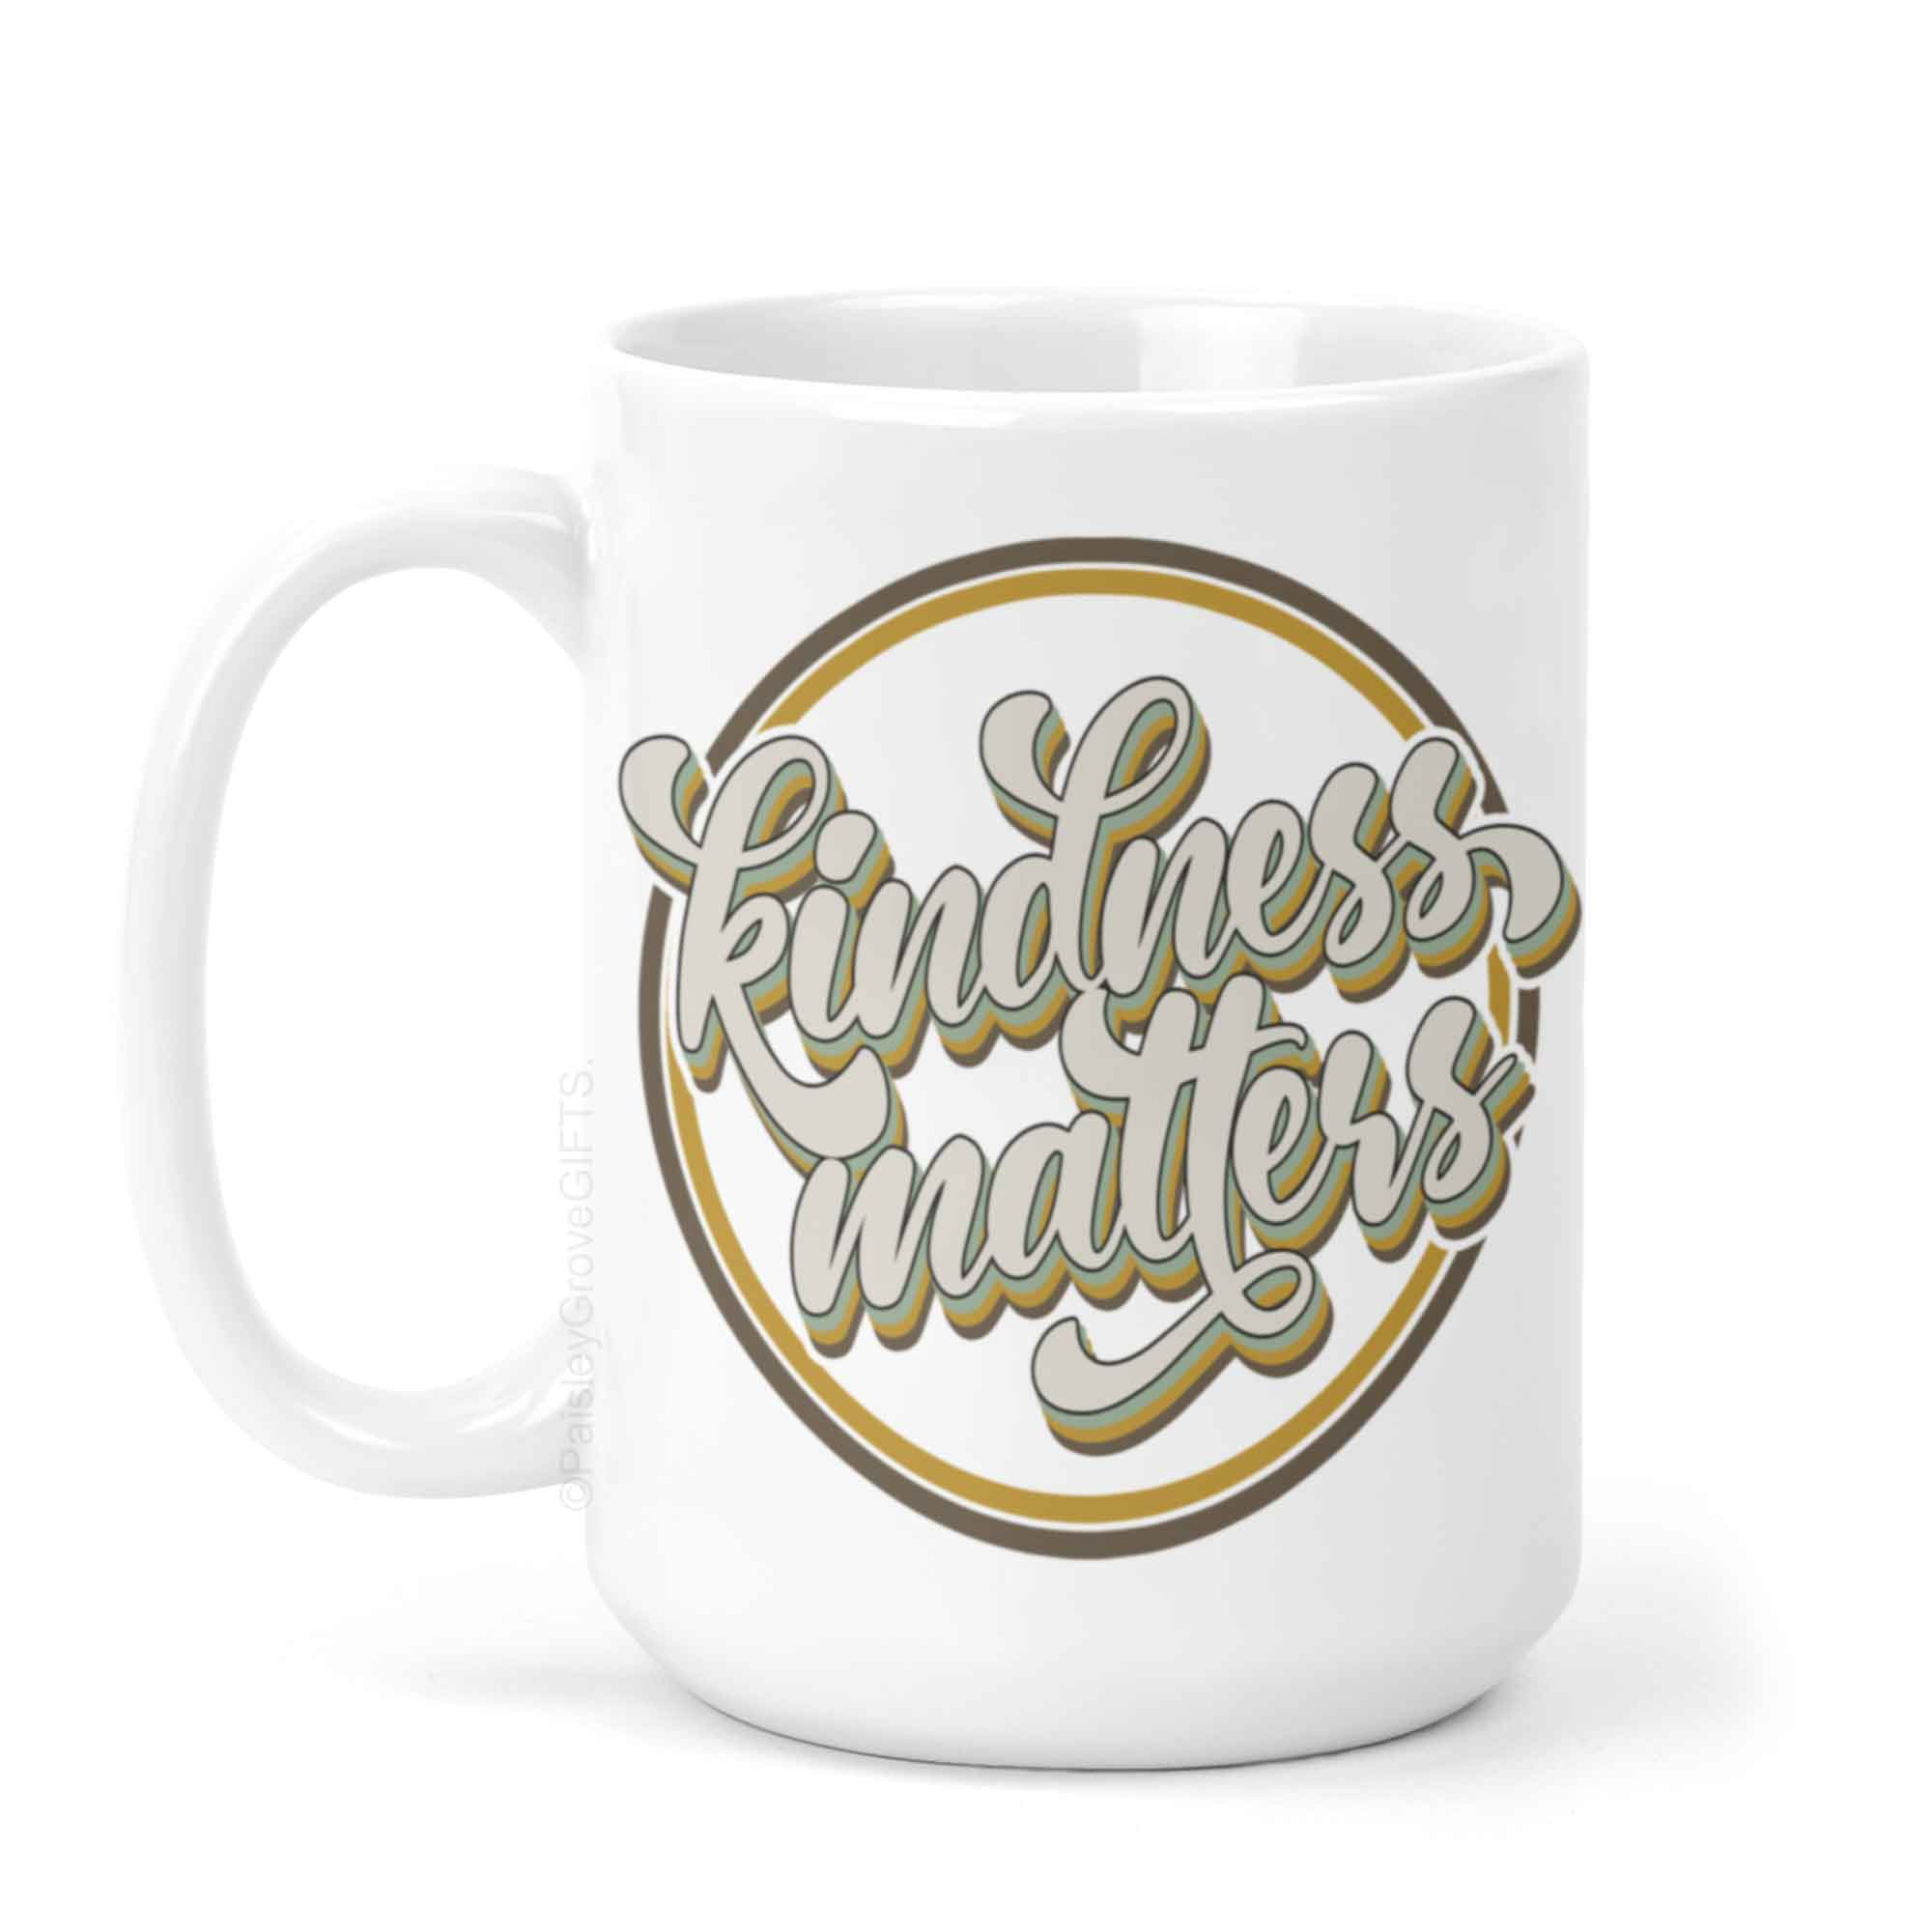 CopyrightPaisleyGroveGIFTS P001a Retro Kindness Matters Coffee Mug in Modern Boho colors